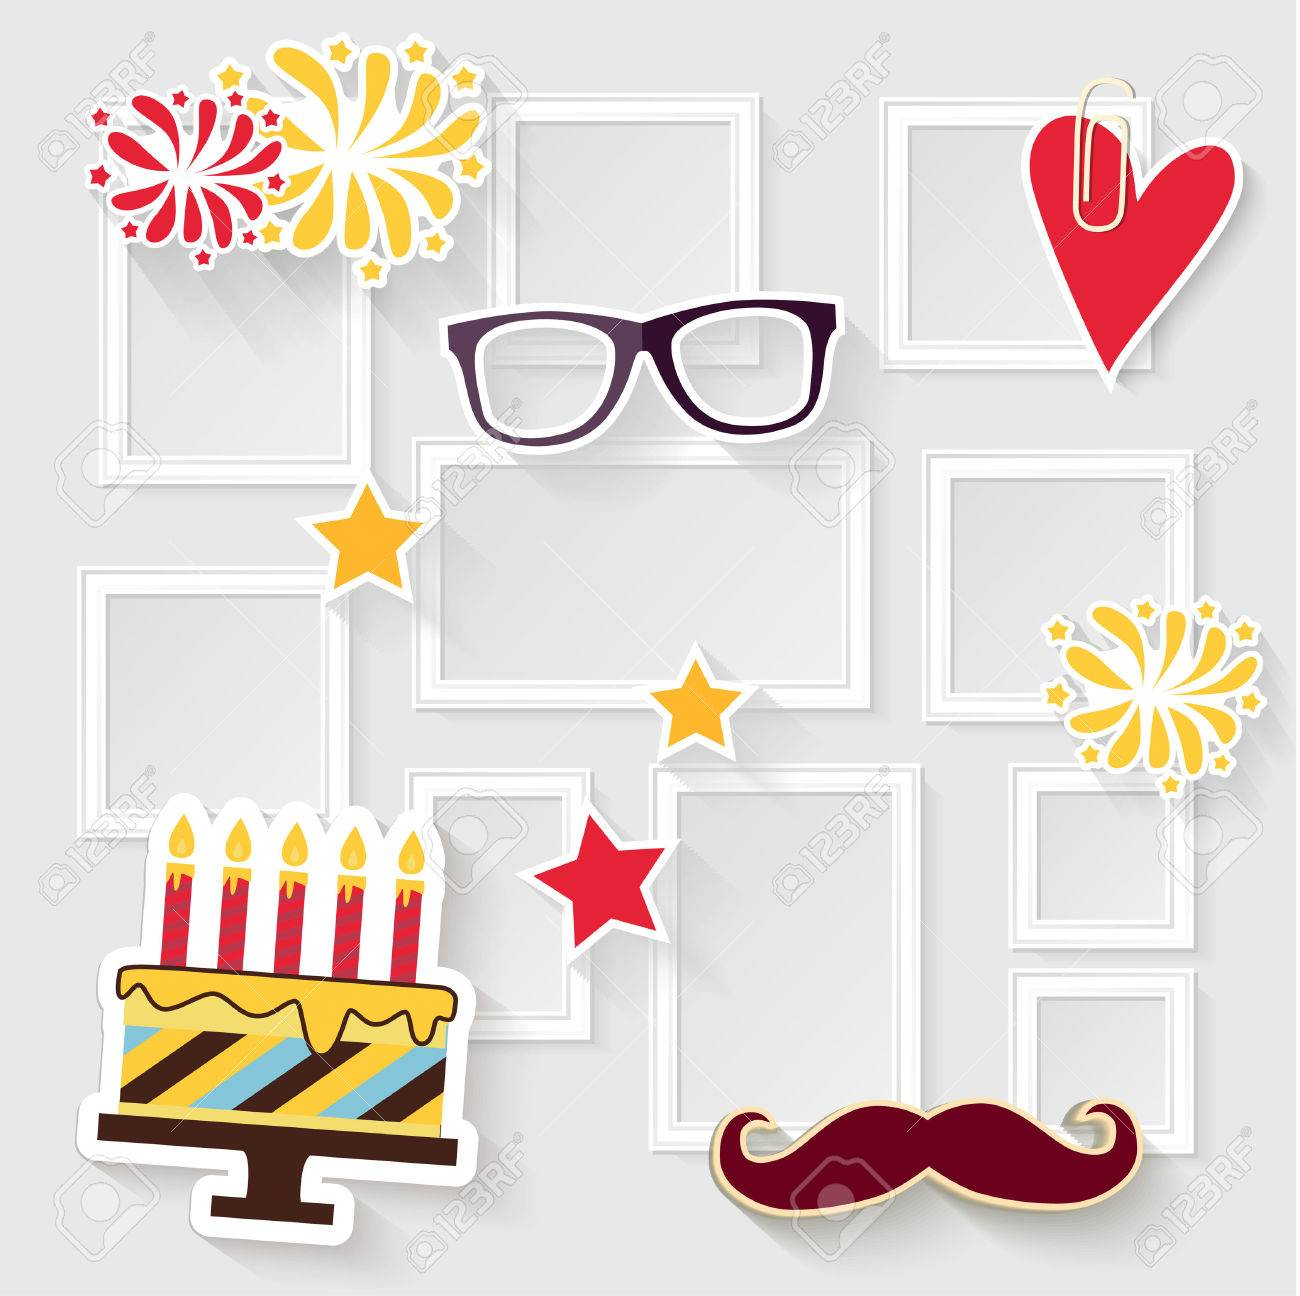 Realistic design photo frames on white background. Decorative template for baby, family or memories. Scrapbook concept, vector illustration. Birthday - 49174098